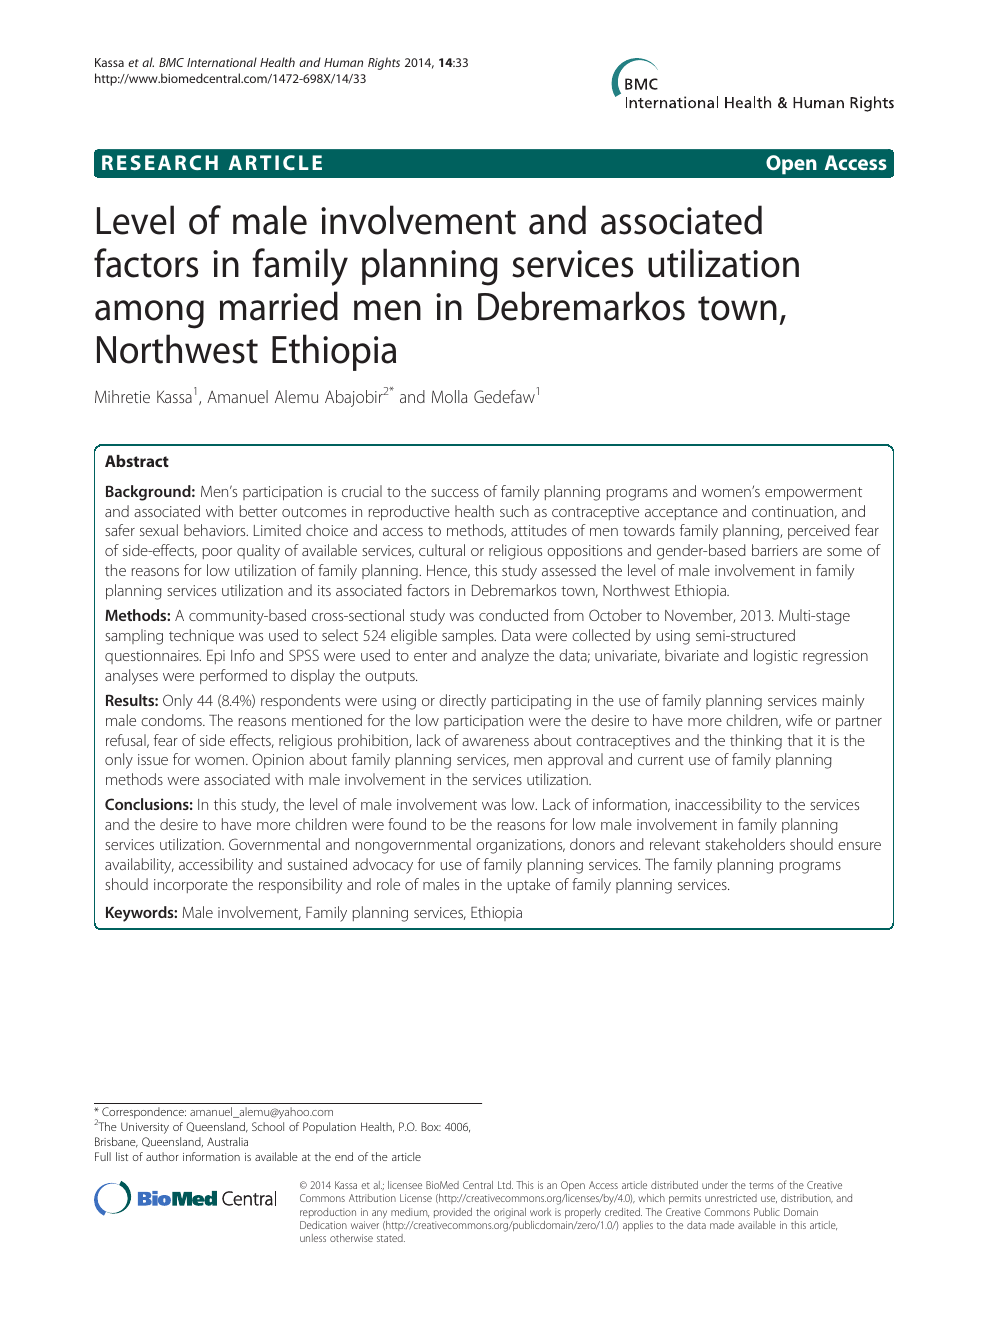 Level of male involvement and associated factors in family planning